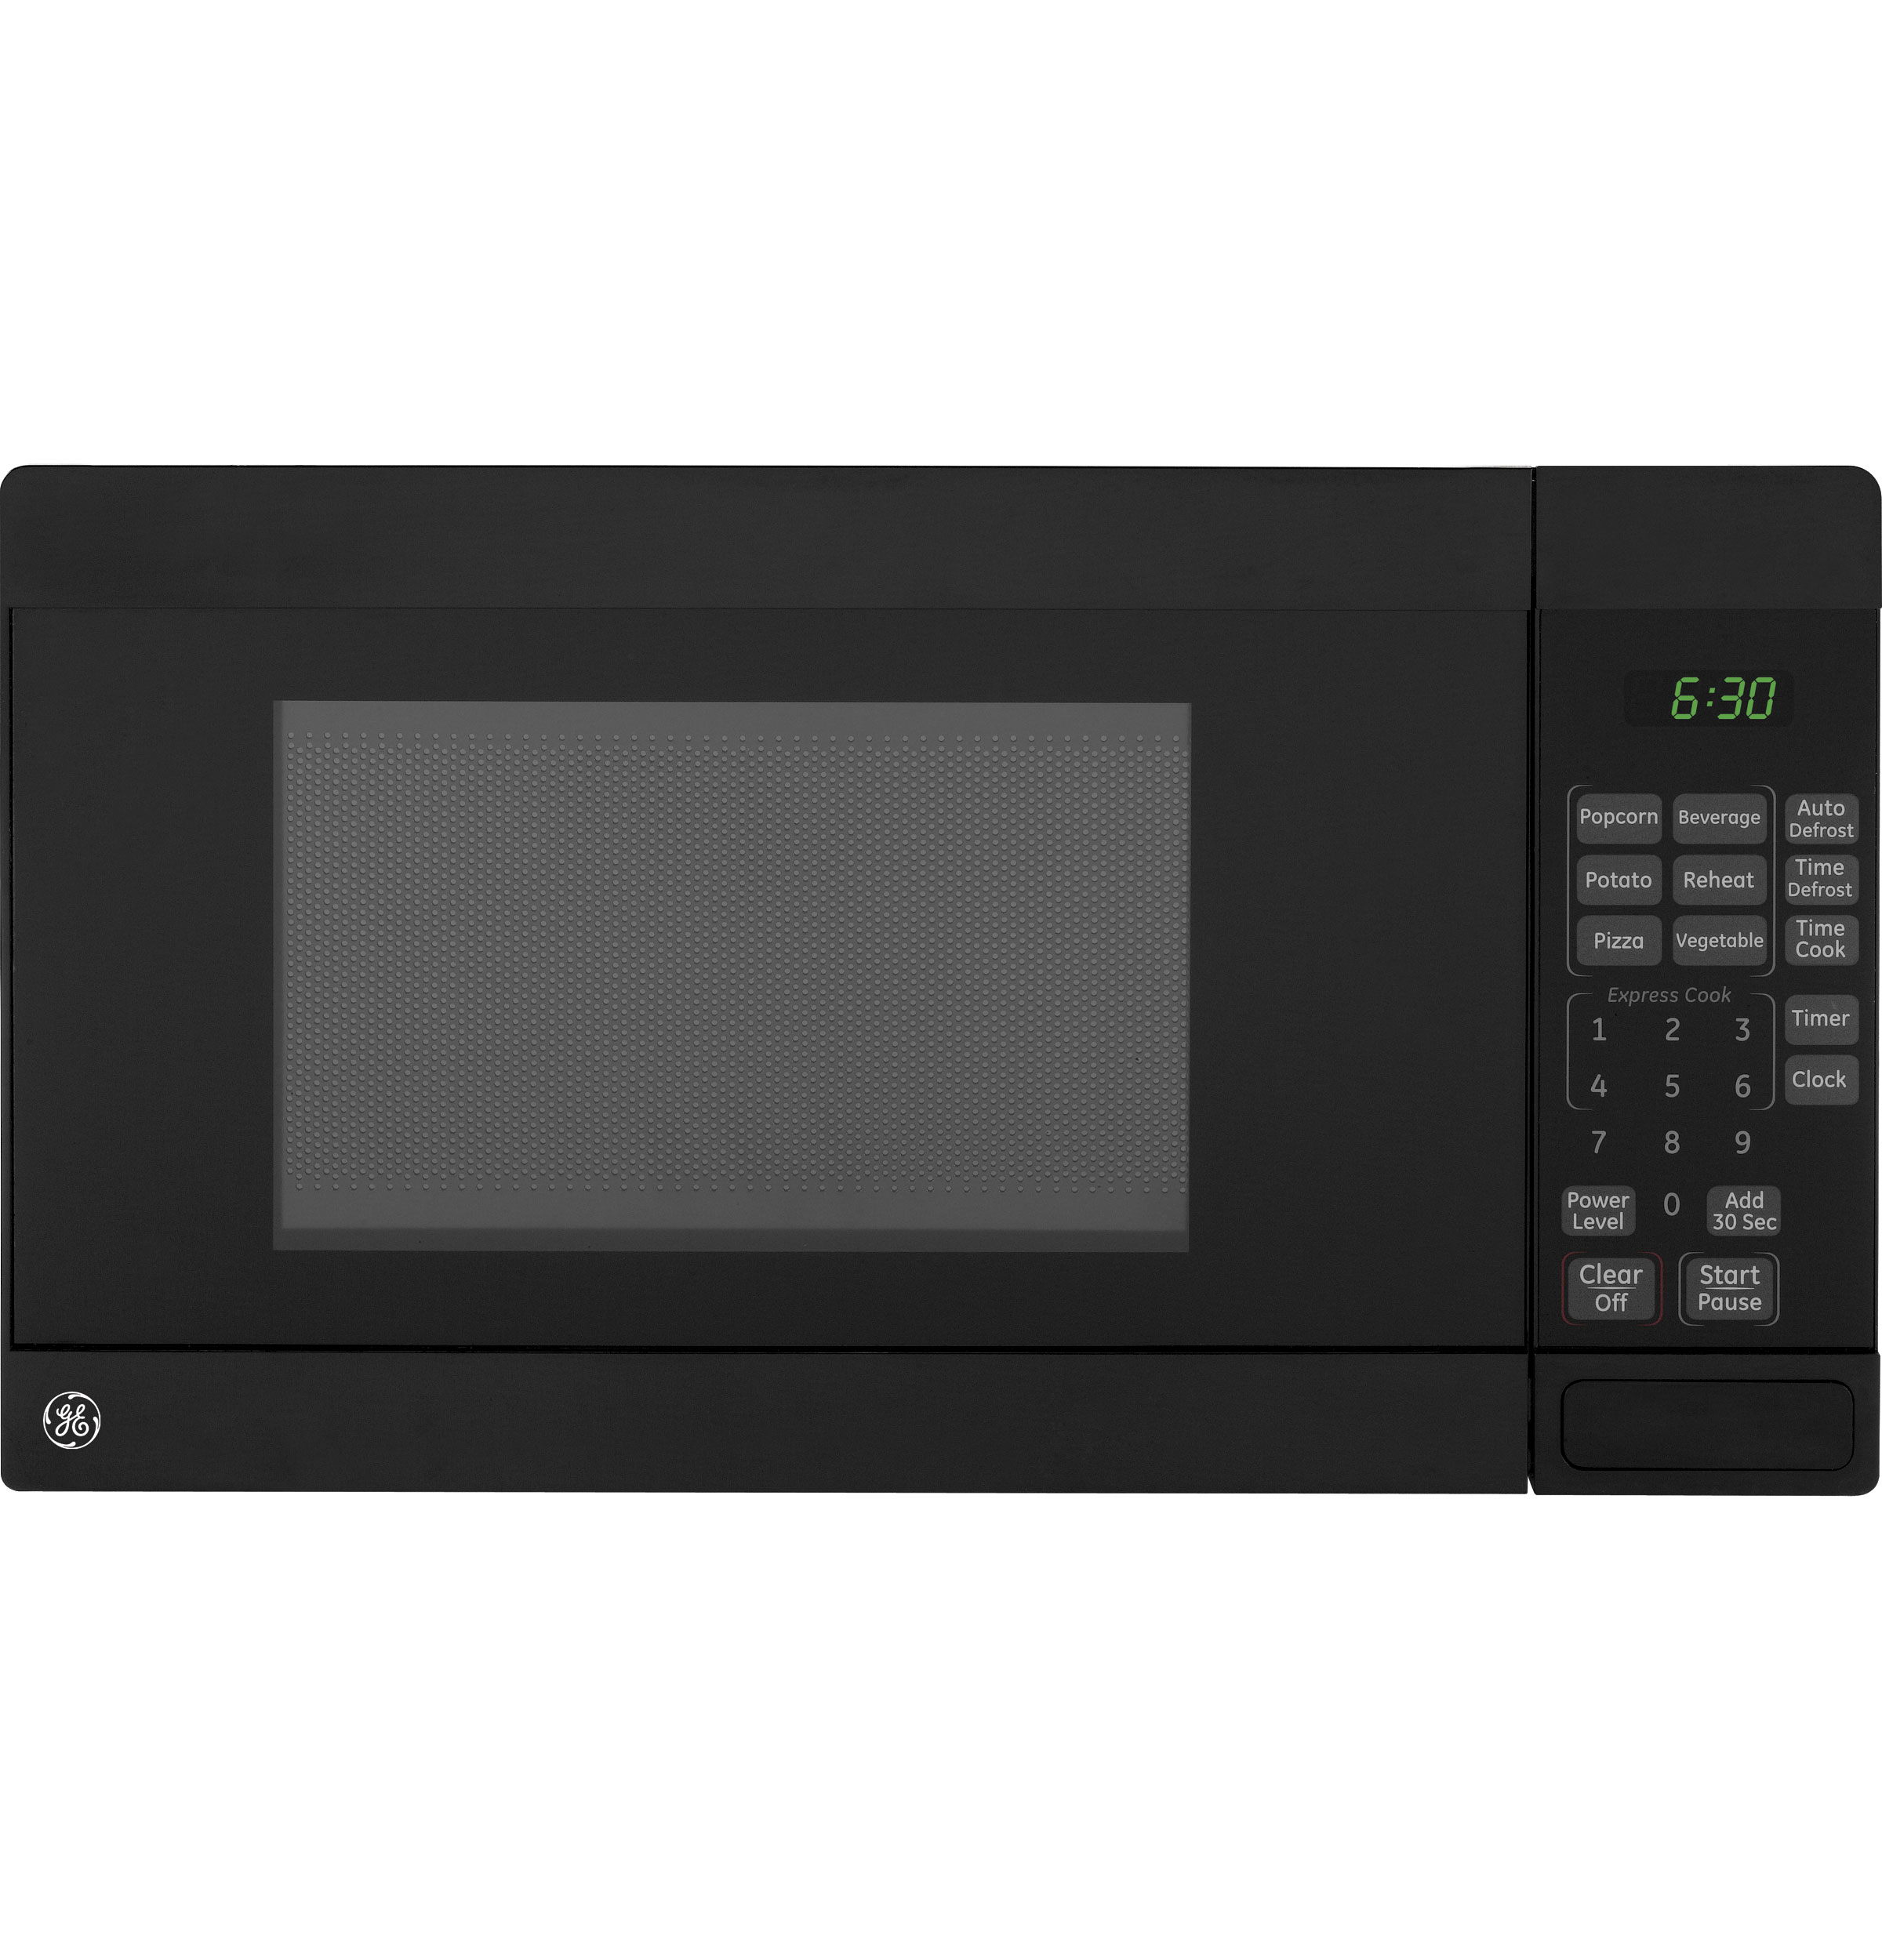 Countertop Microwave Oven Reviews : Microwave Oven: Countertop Microwave Convection Oven Reviews